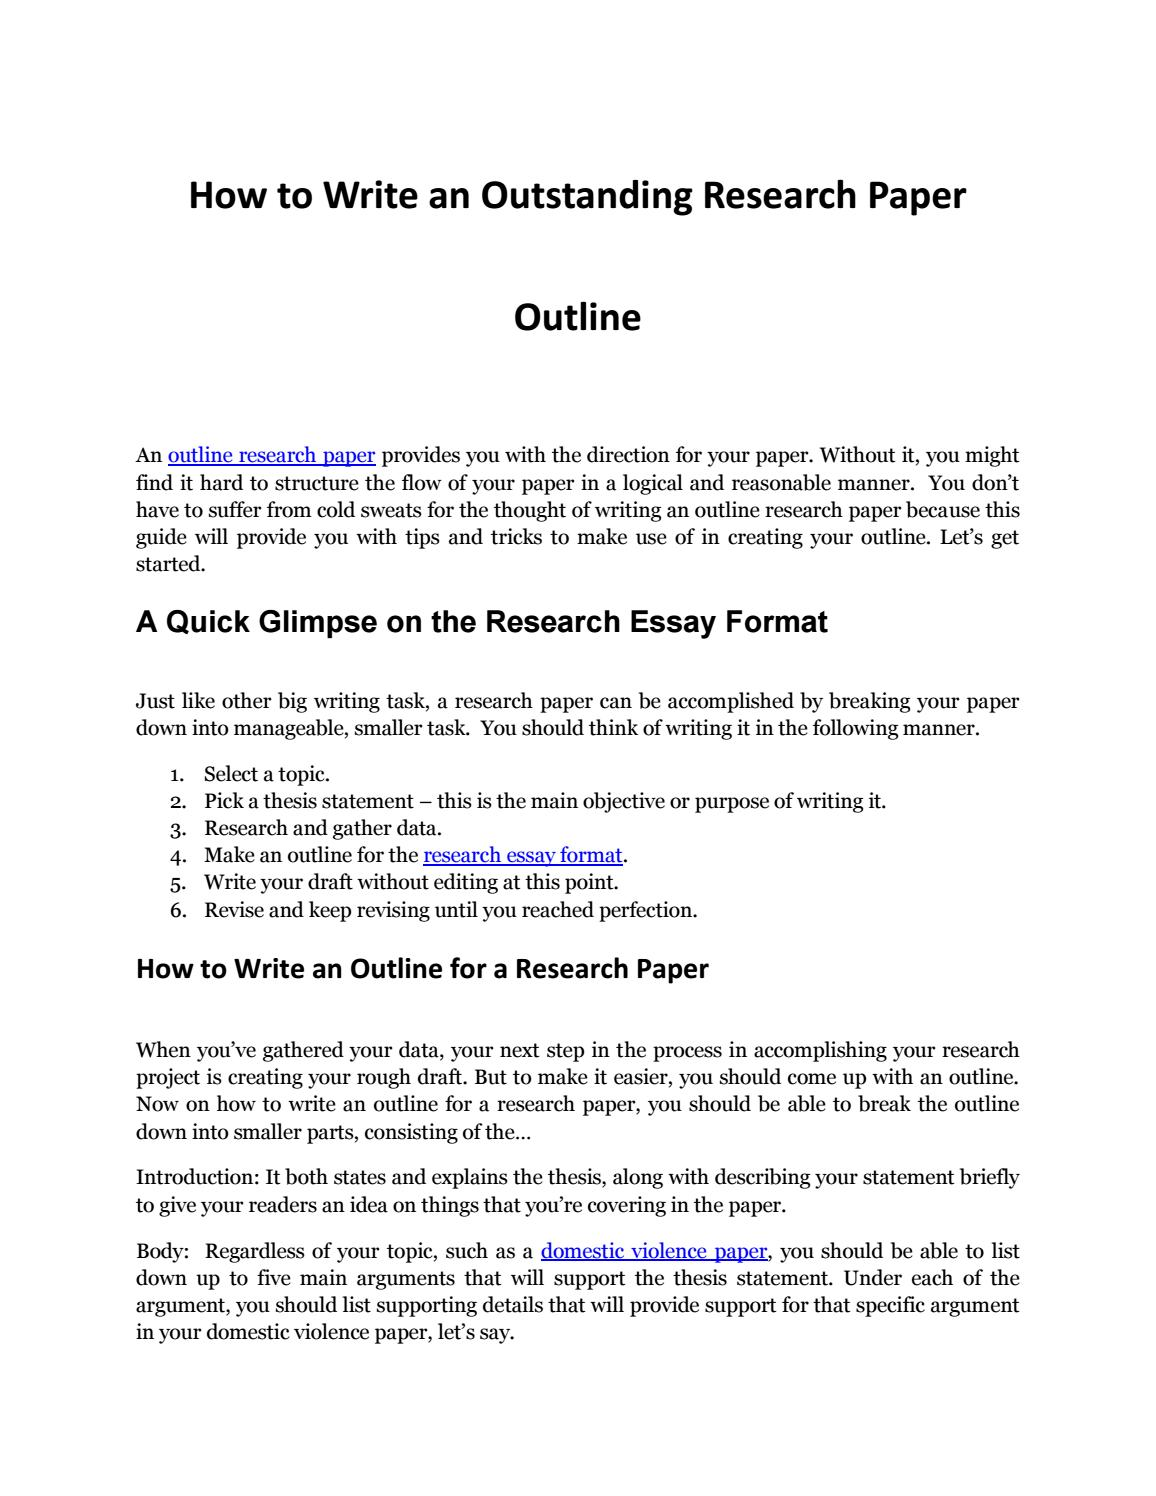 020 Write Outline Research Paper Page 1 Exceptional How To An For Mla Style Apa Template Full